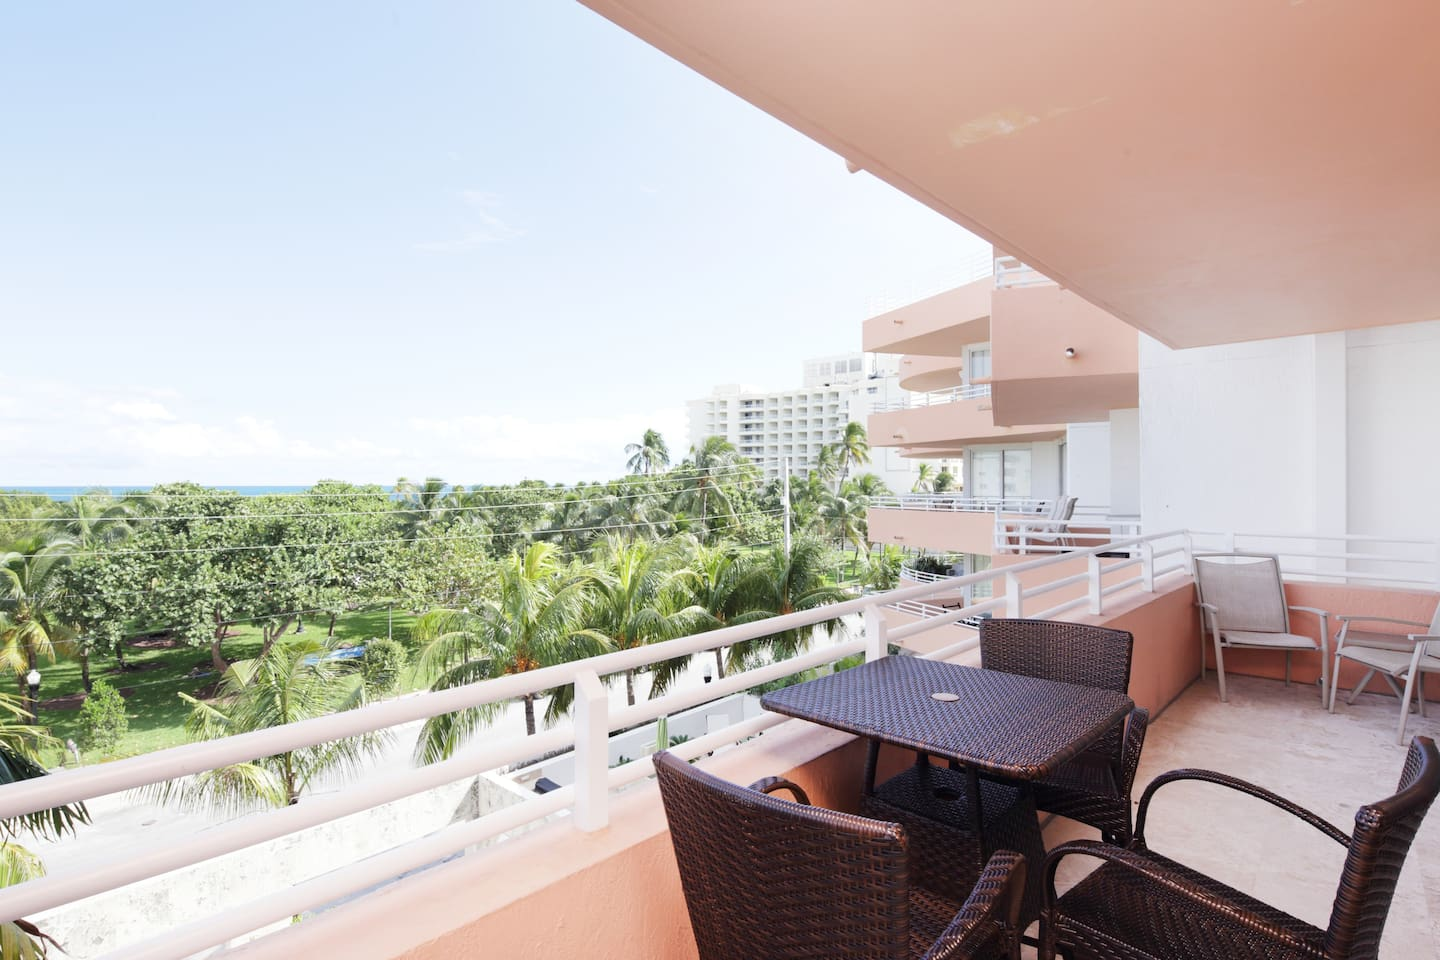 Balcony with Ocean View and outdoor dining